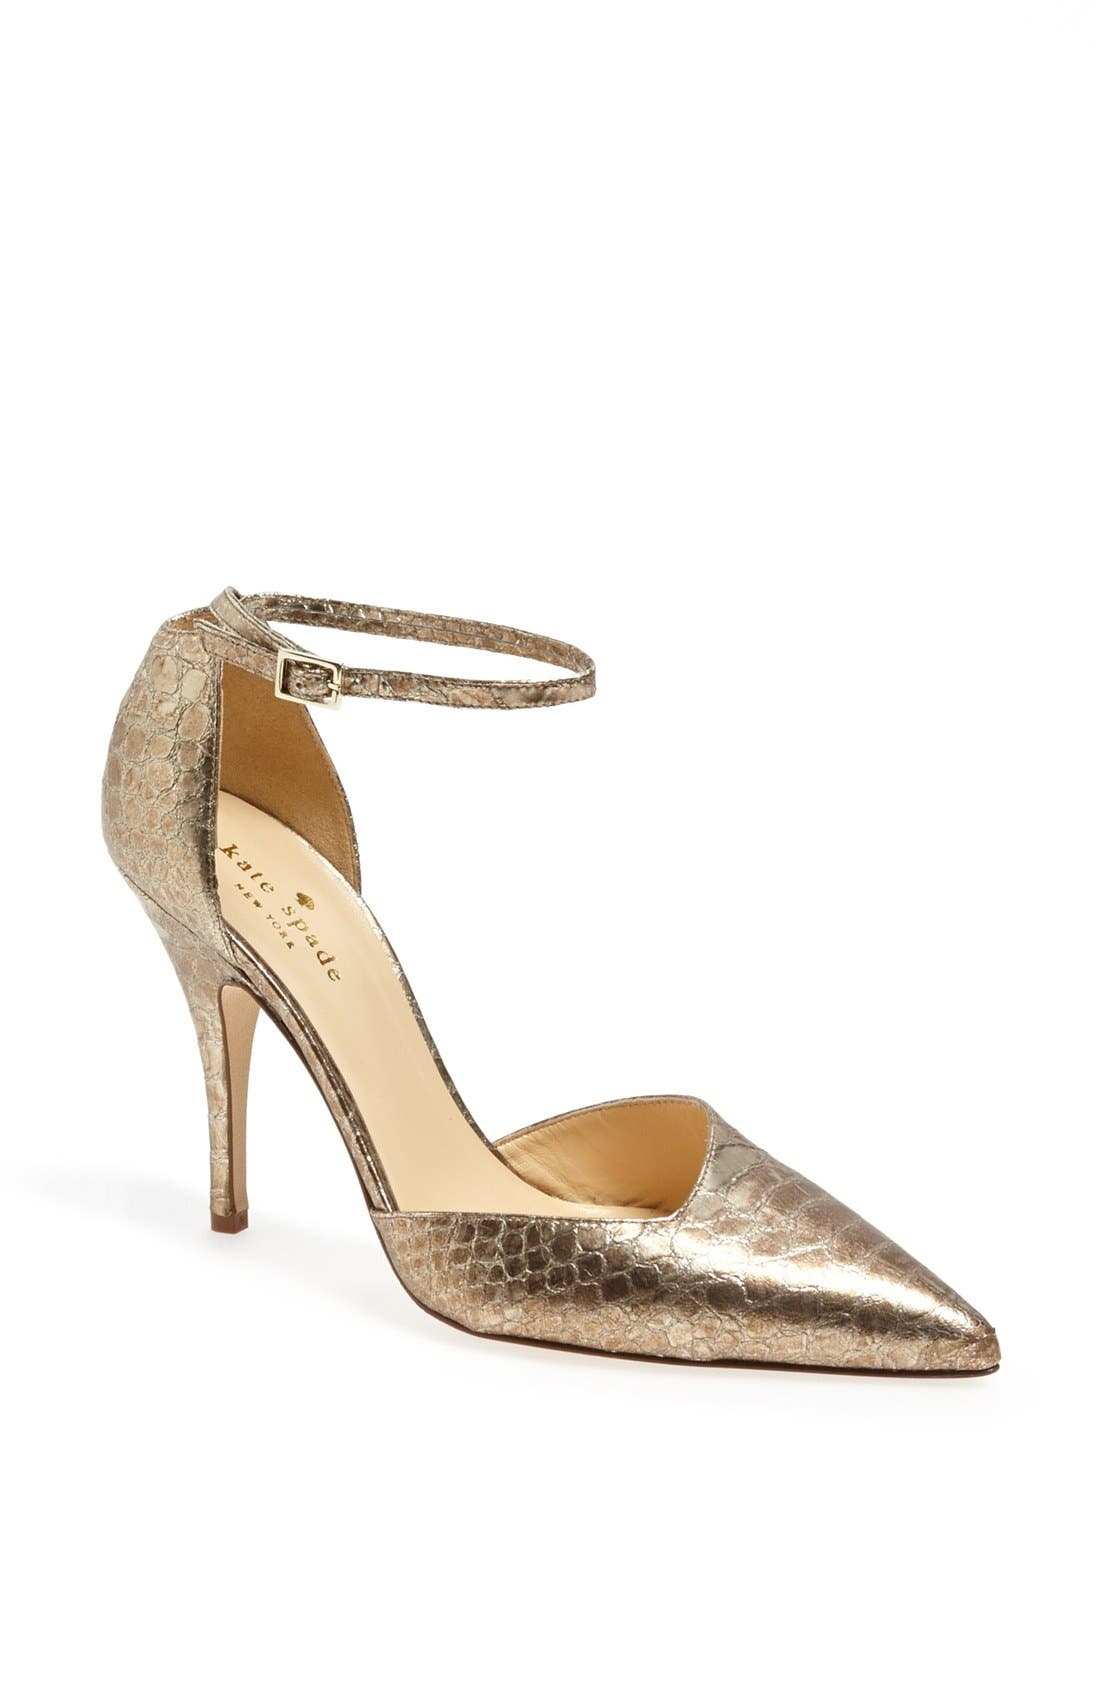 Main Image - kate spade new york 'liliana' pump